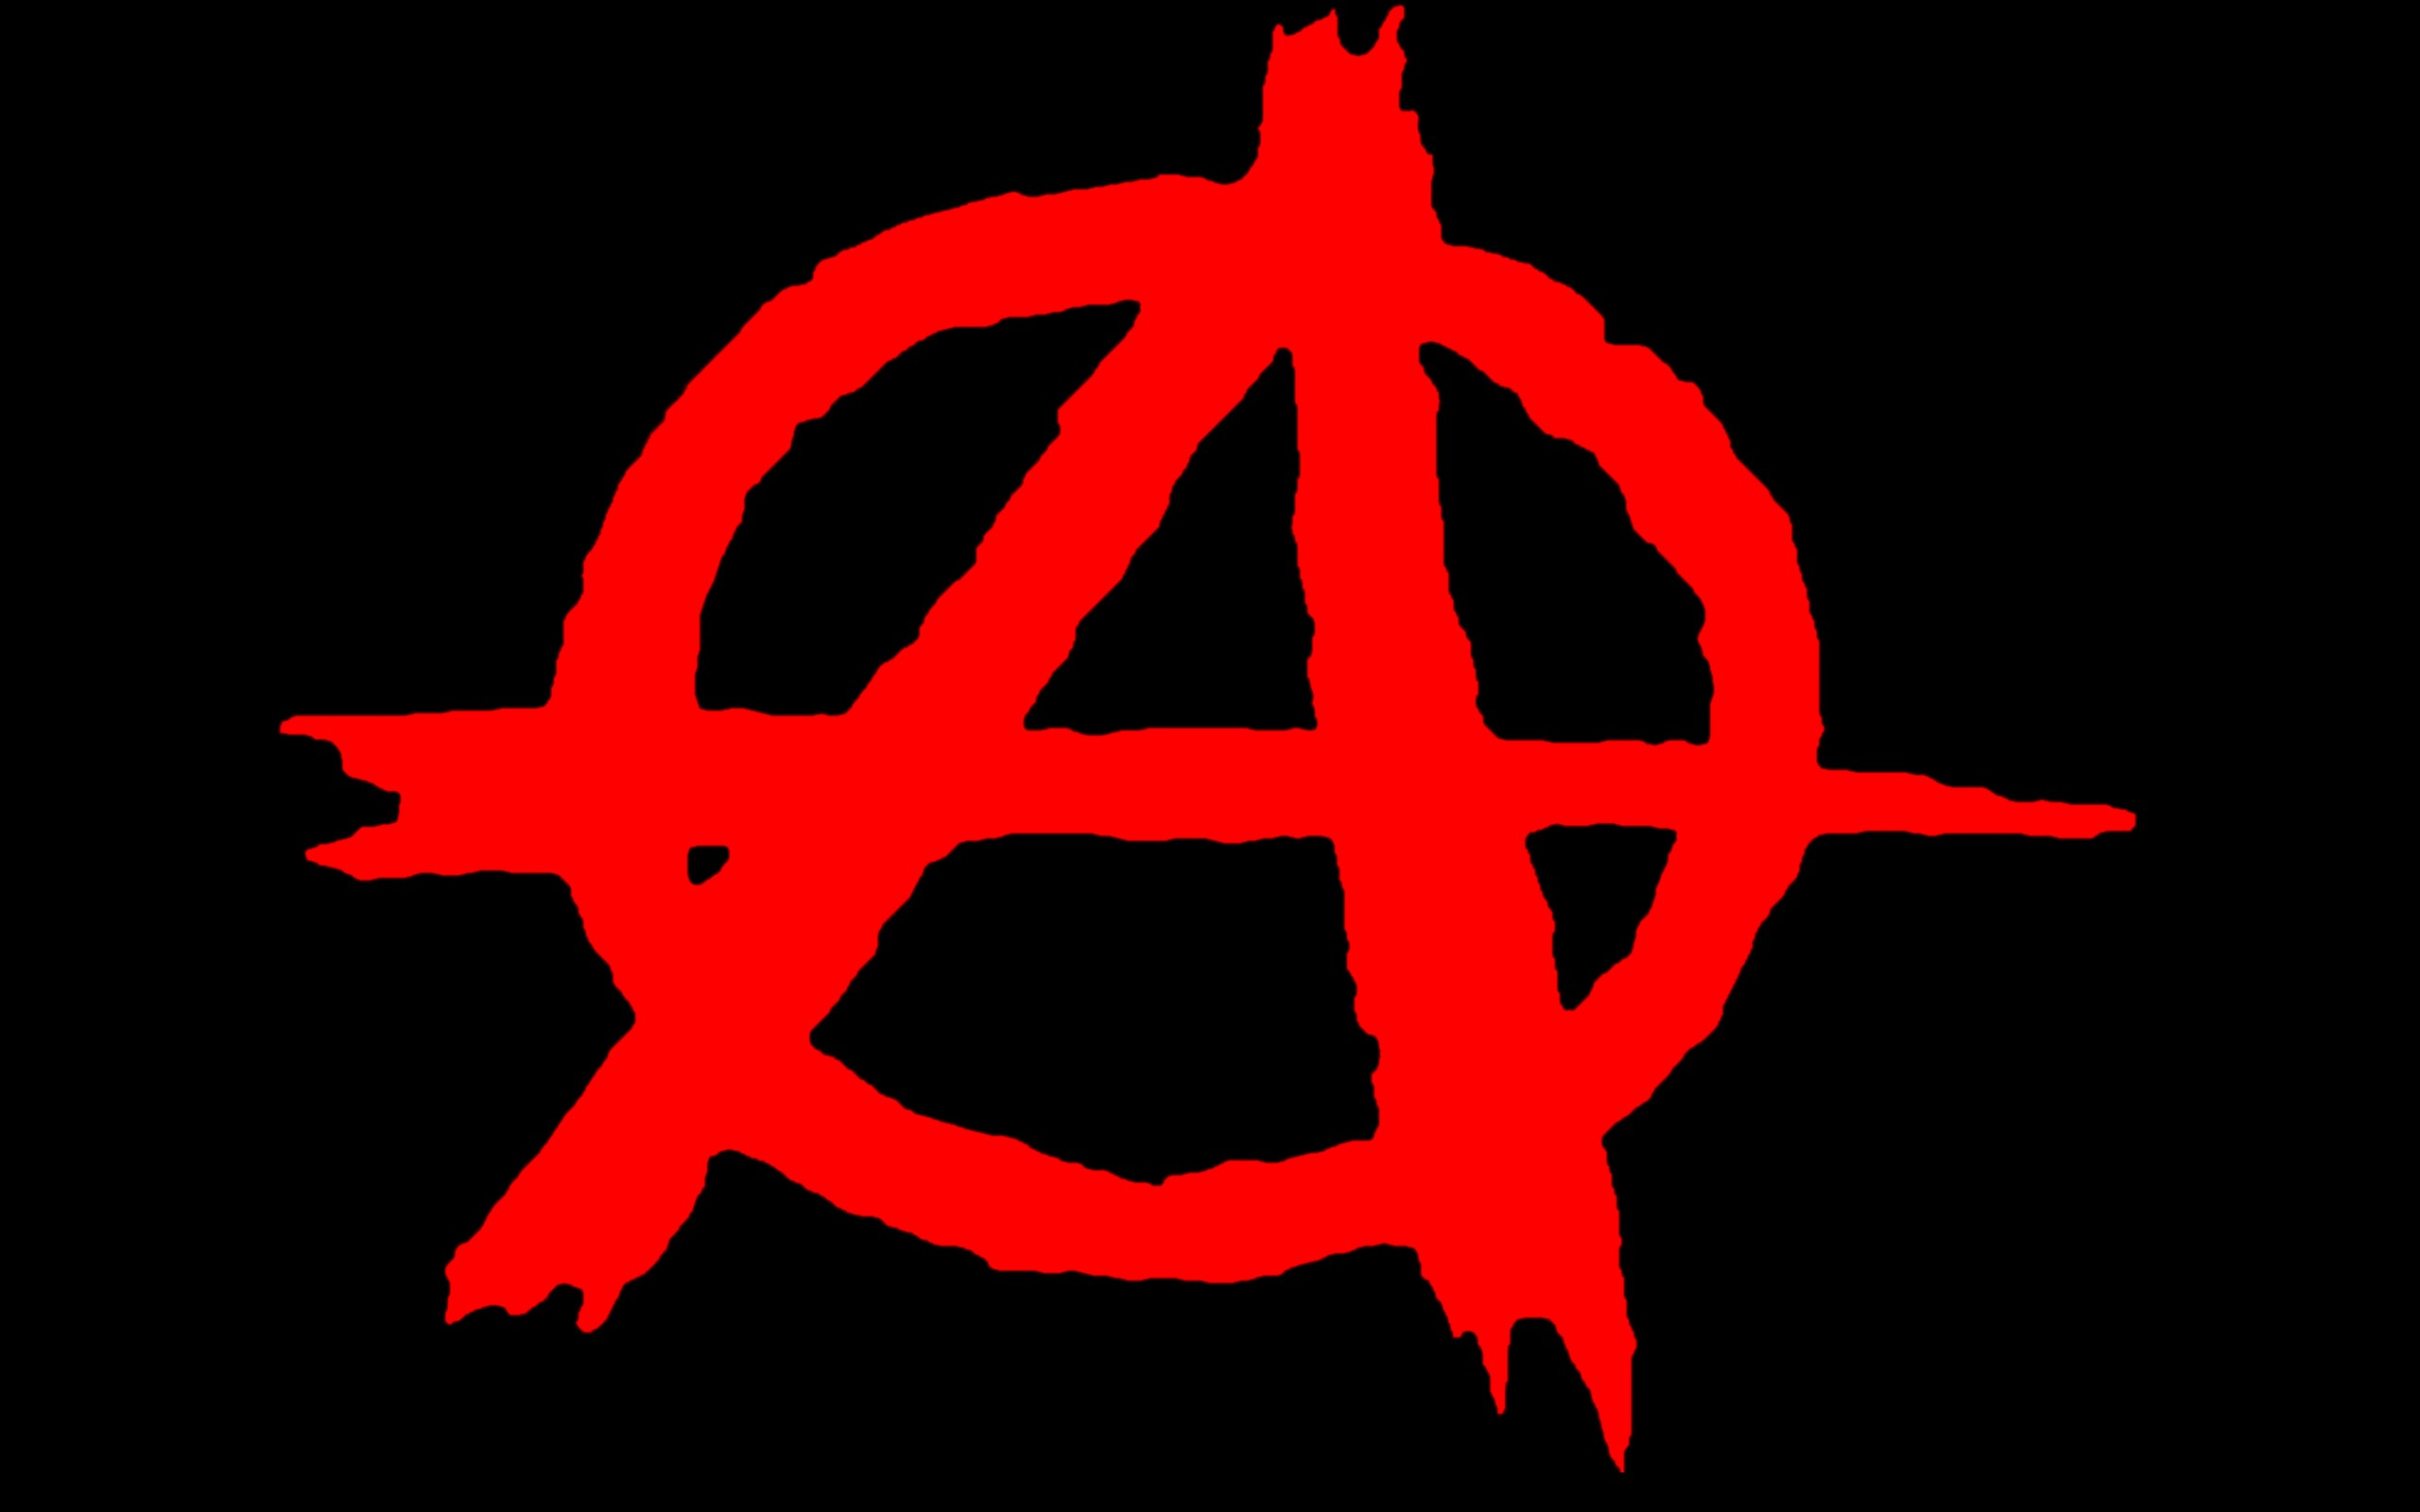 Signs symbol peace anarchy freedom sign anarchism wallpaper signs symbol peace anarchy freedom sign anarchism wallpaper 2560x1600 82565 wallpaperup buycottarizona